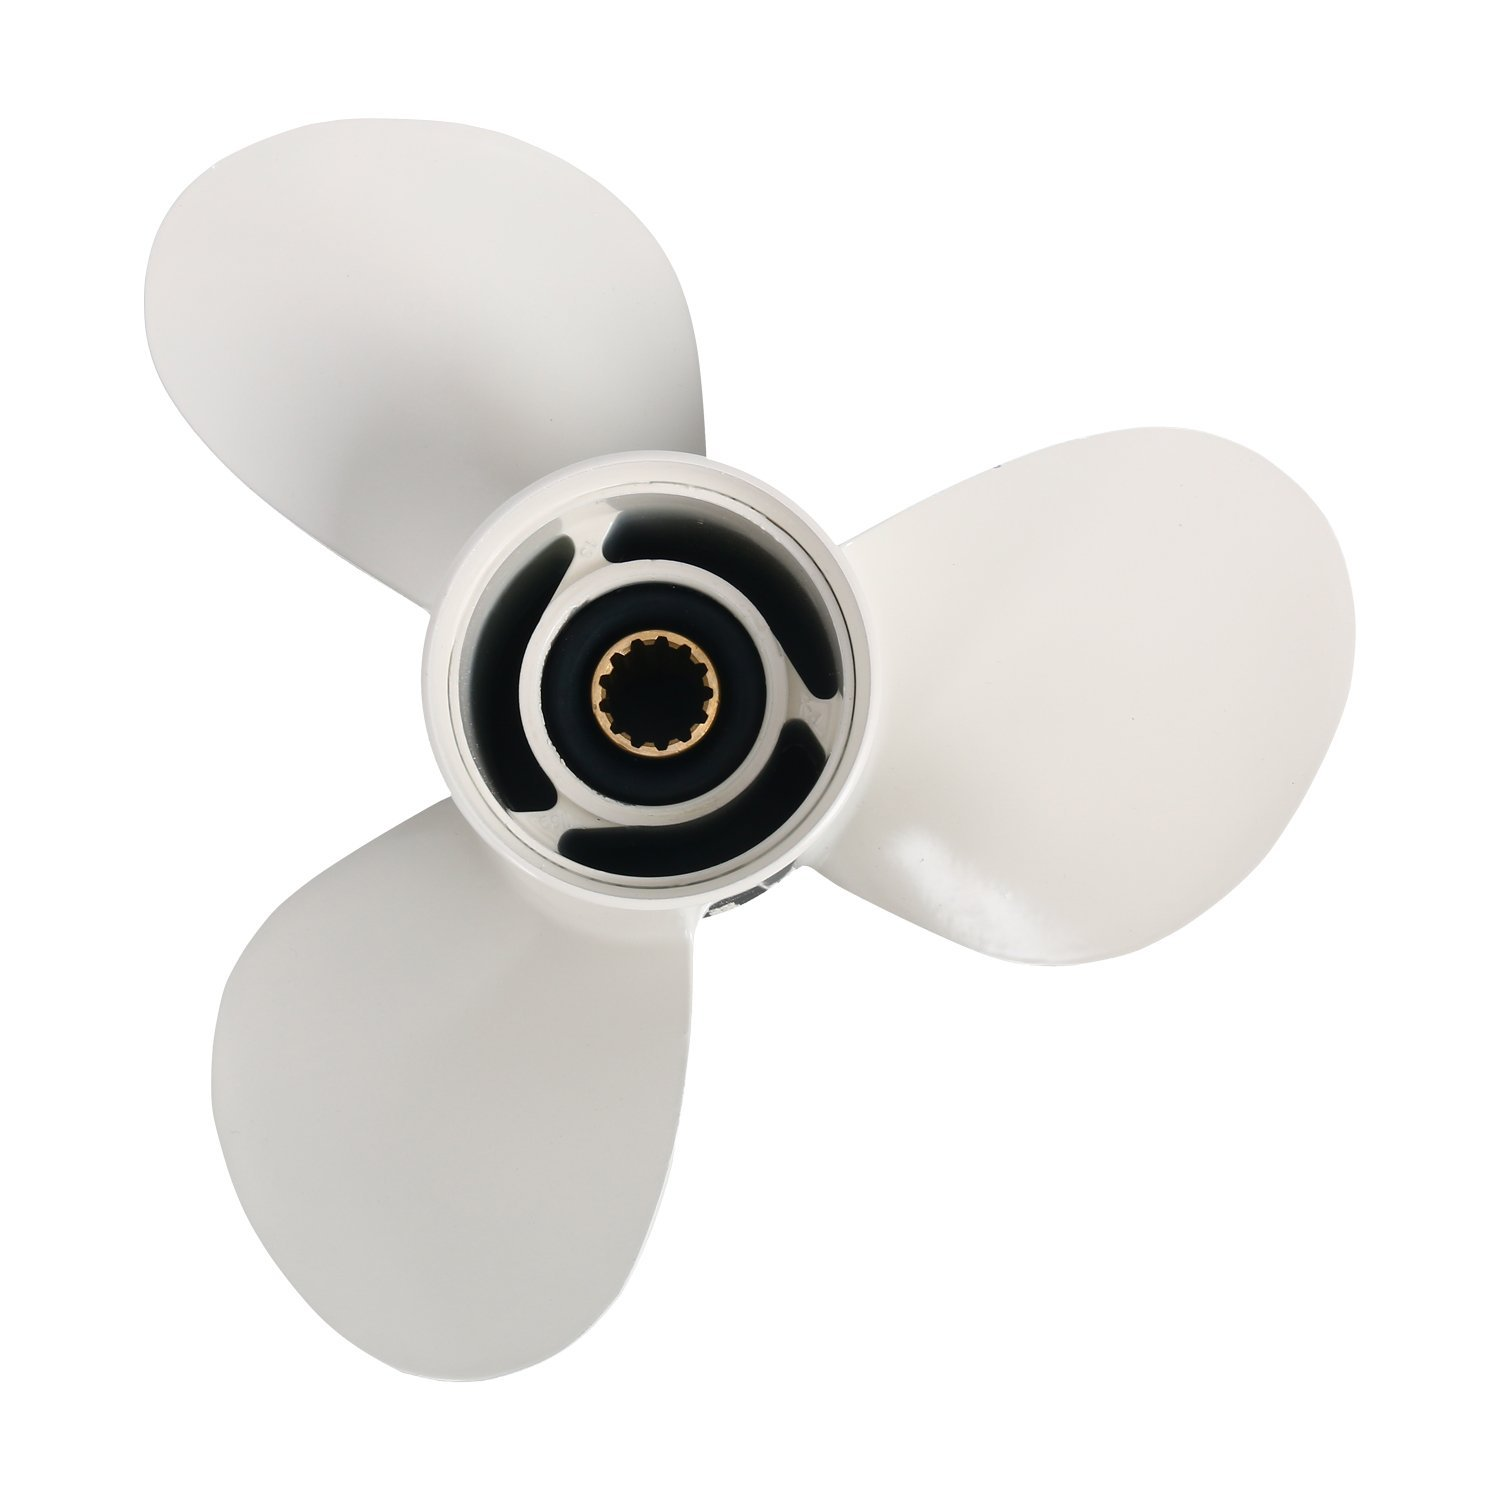 Size-11 1//8 x 13 G PROPELLER NEW ALLOY TO SUIT YAMAHA 40-60HP ENGINES